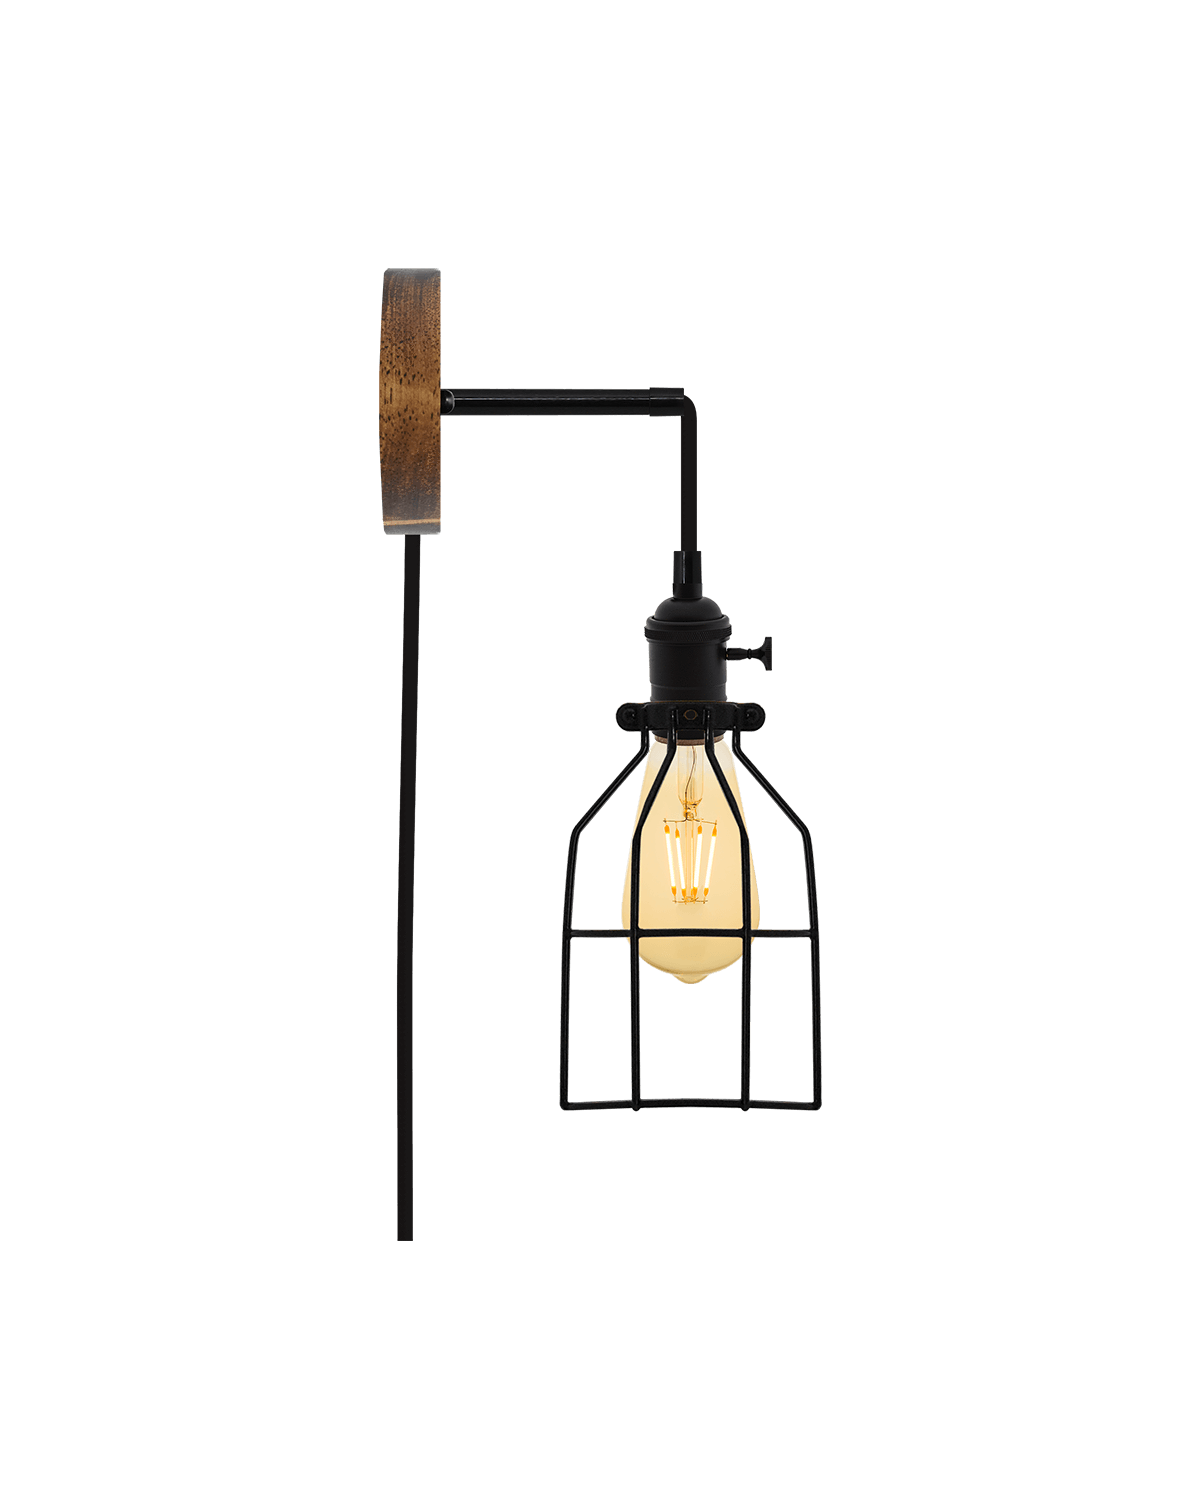 Plug-in Adjustable Wall Sconce: Walnut and Black Hangout Lighting